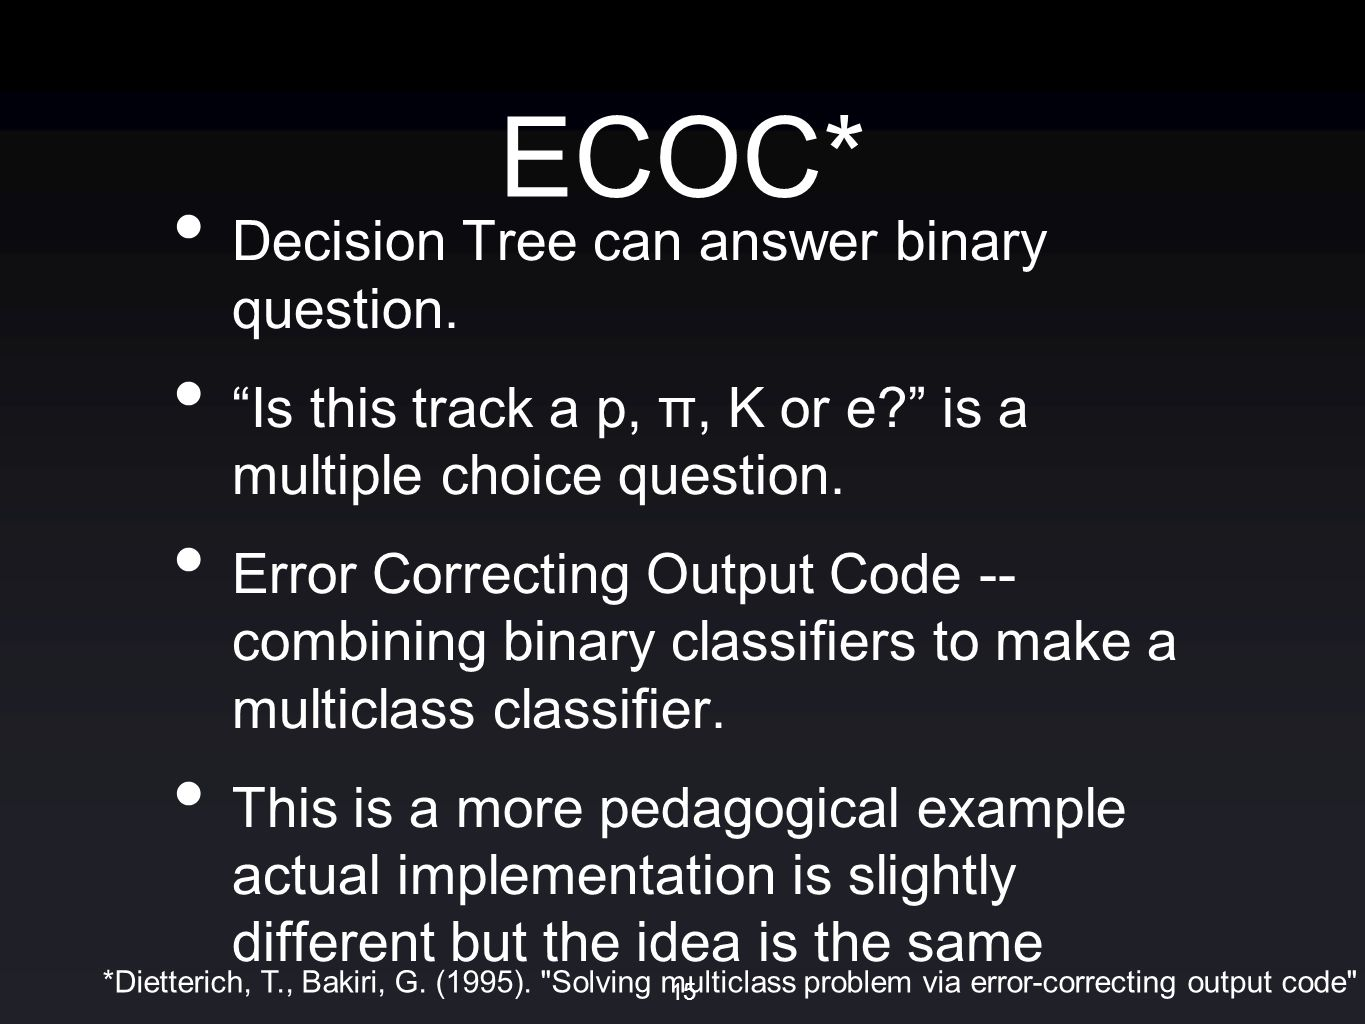 ECOC* Decision Tree can answer binary question.